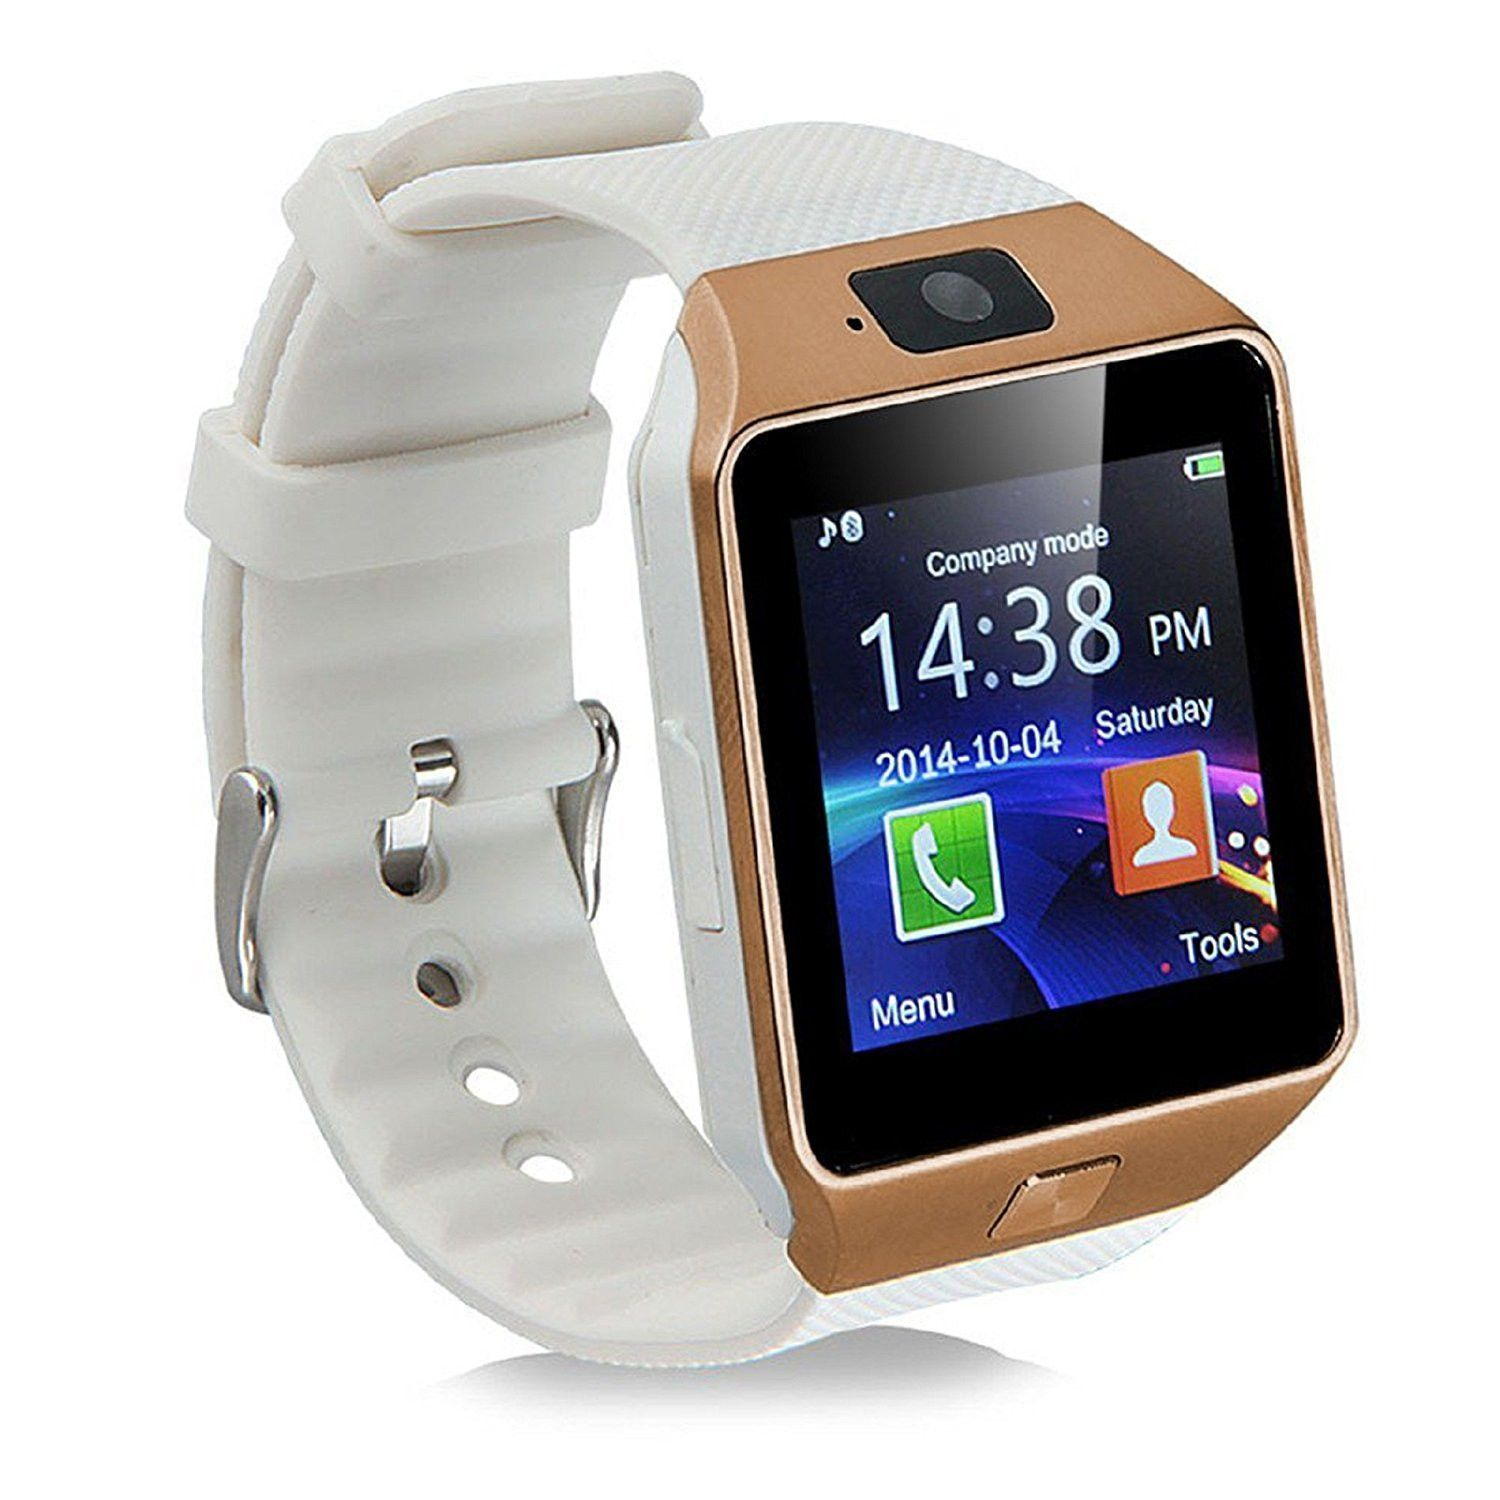 White & Gold Bluetooth Smart Watches